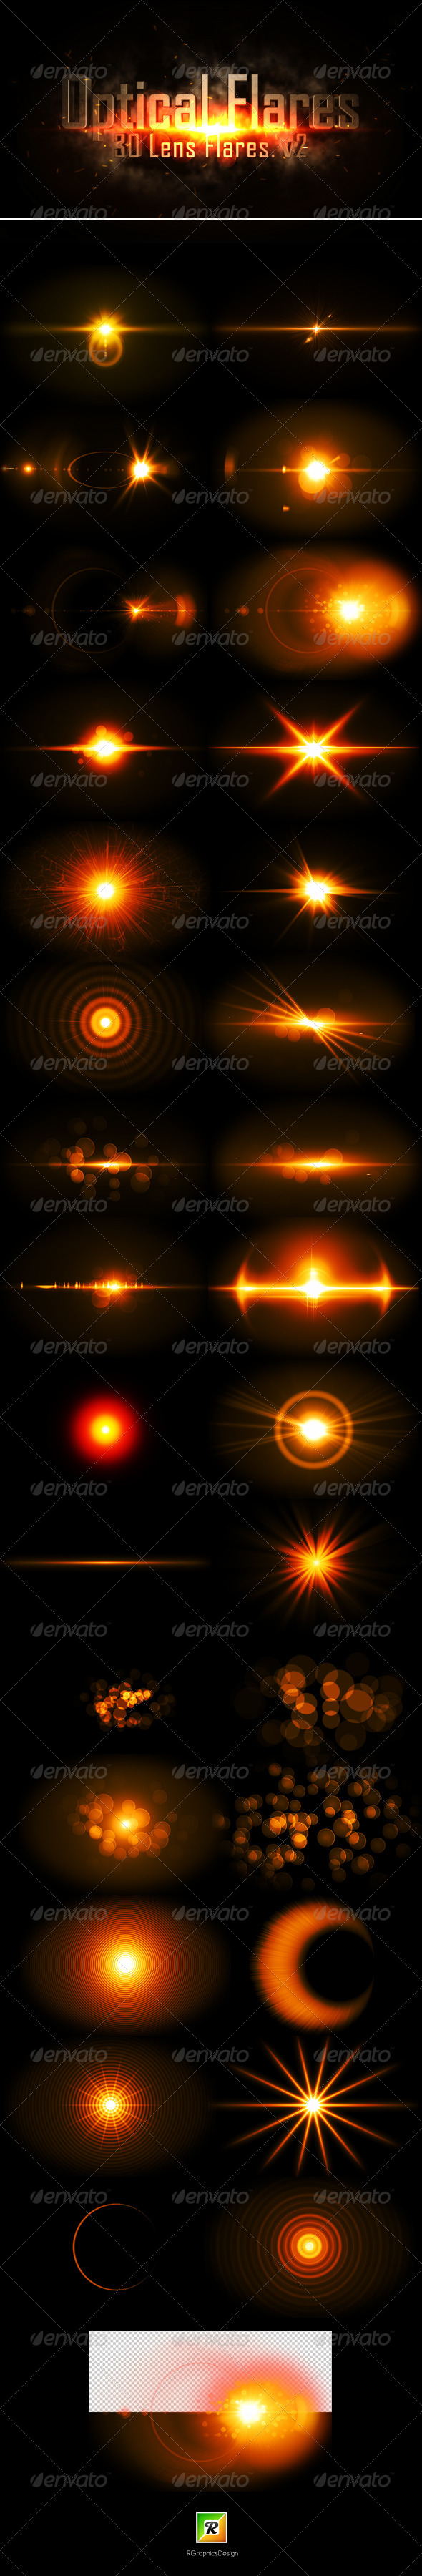 GraphicRiver Optical Flares 30 Lens flares v2 5231371